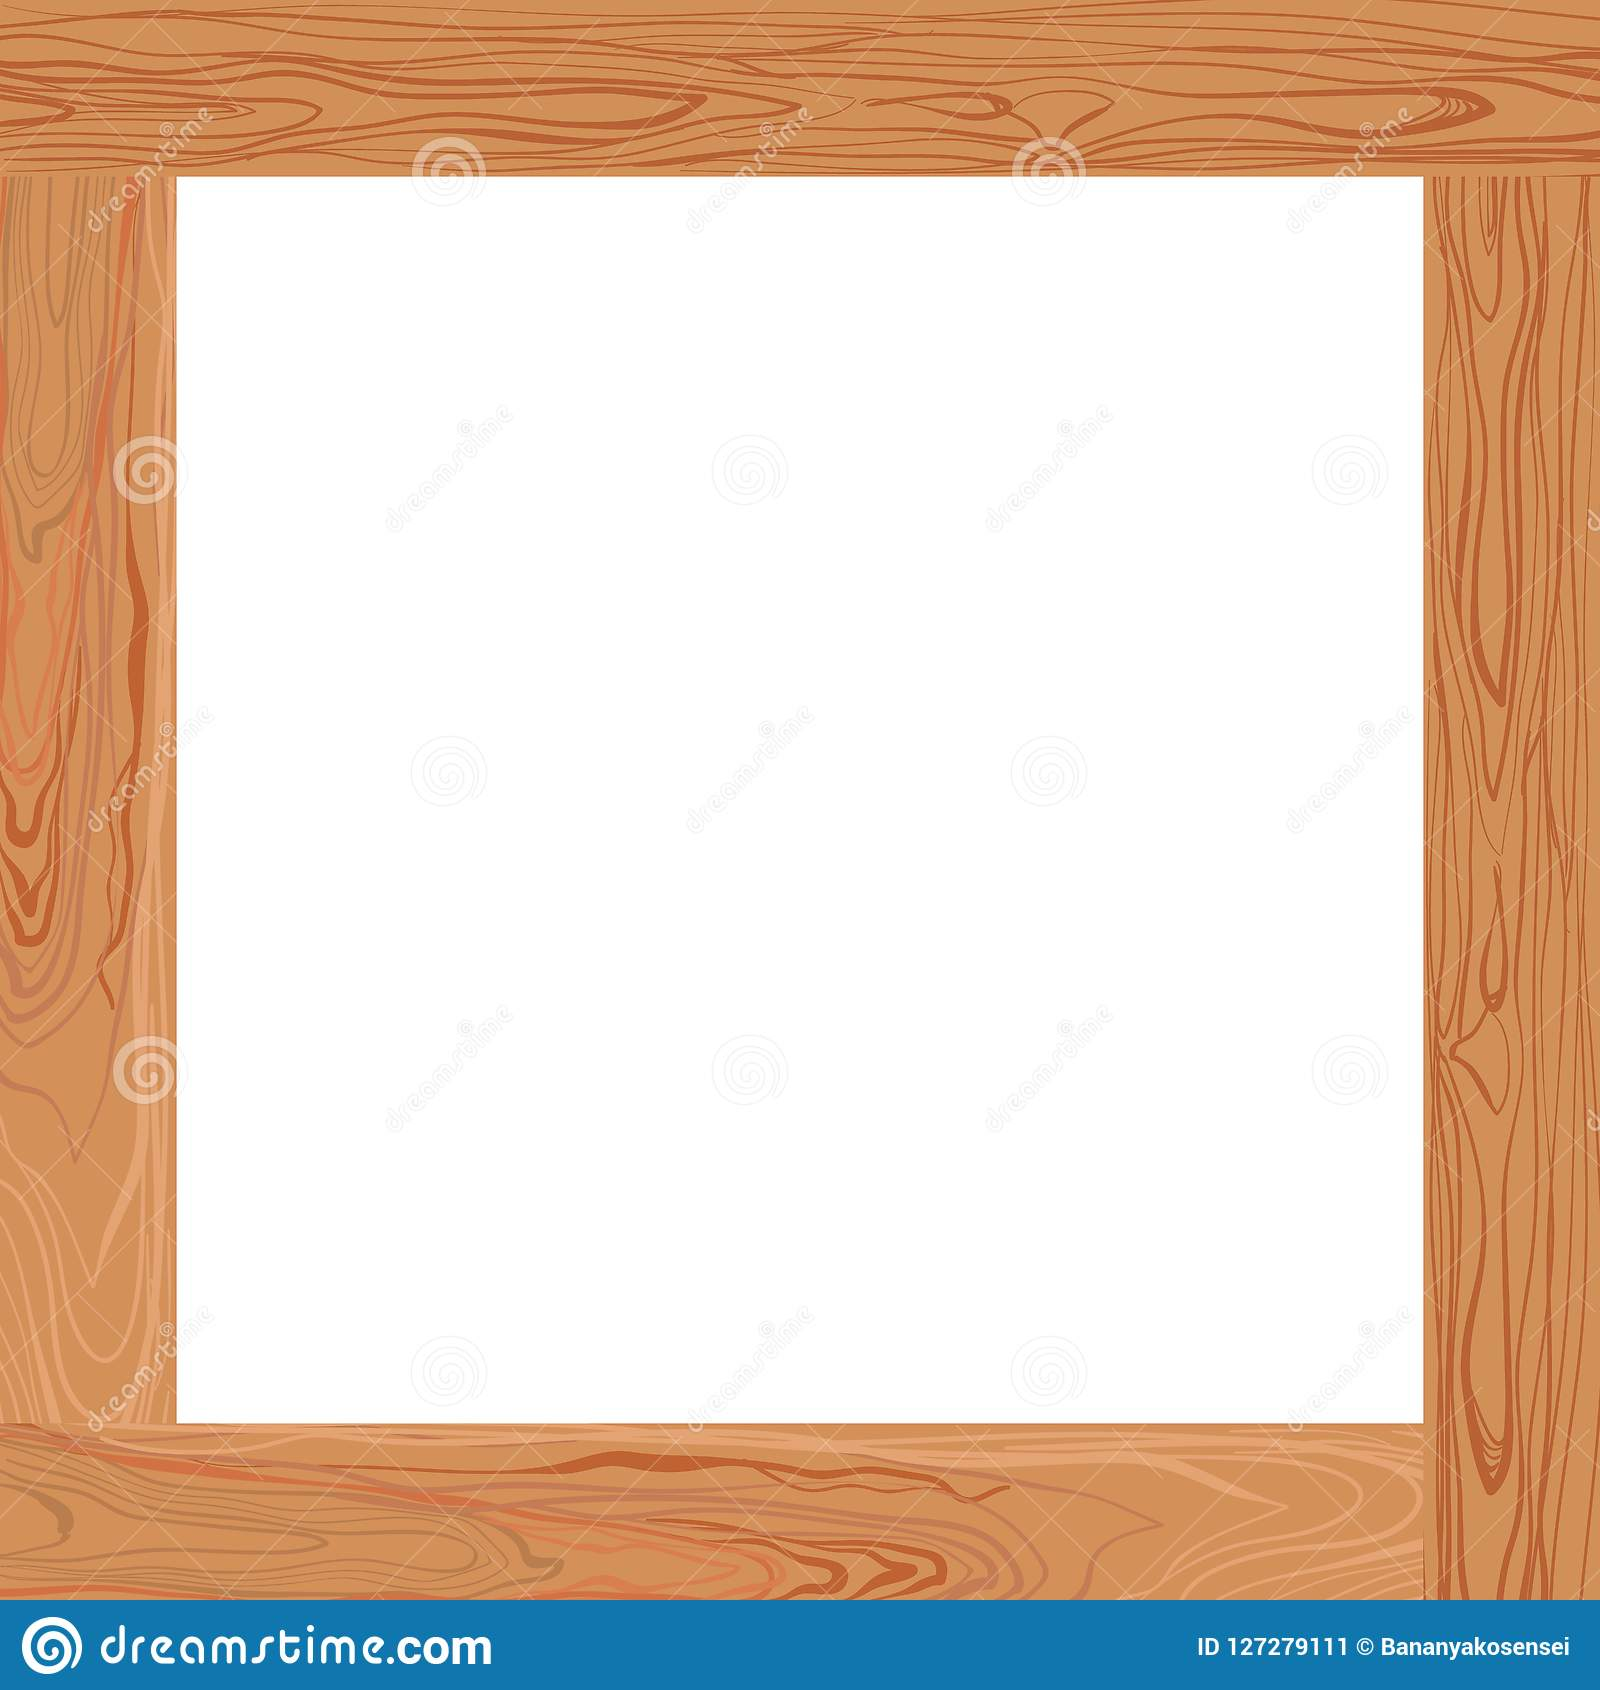 Vector Light Brown Wooden Frame Blank Border Stock Vector